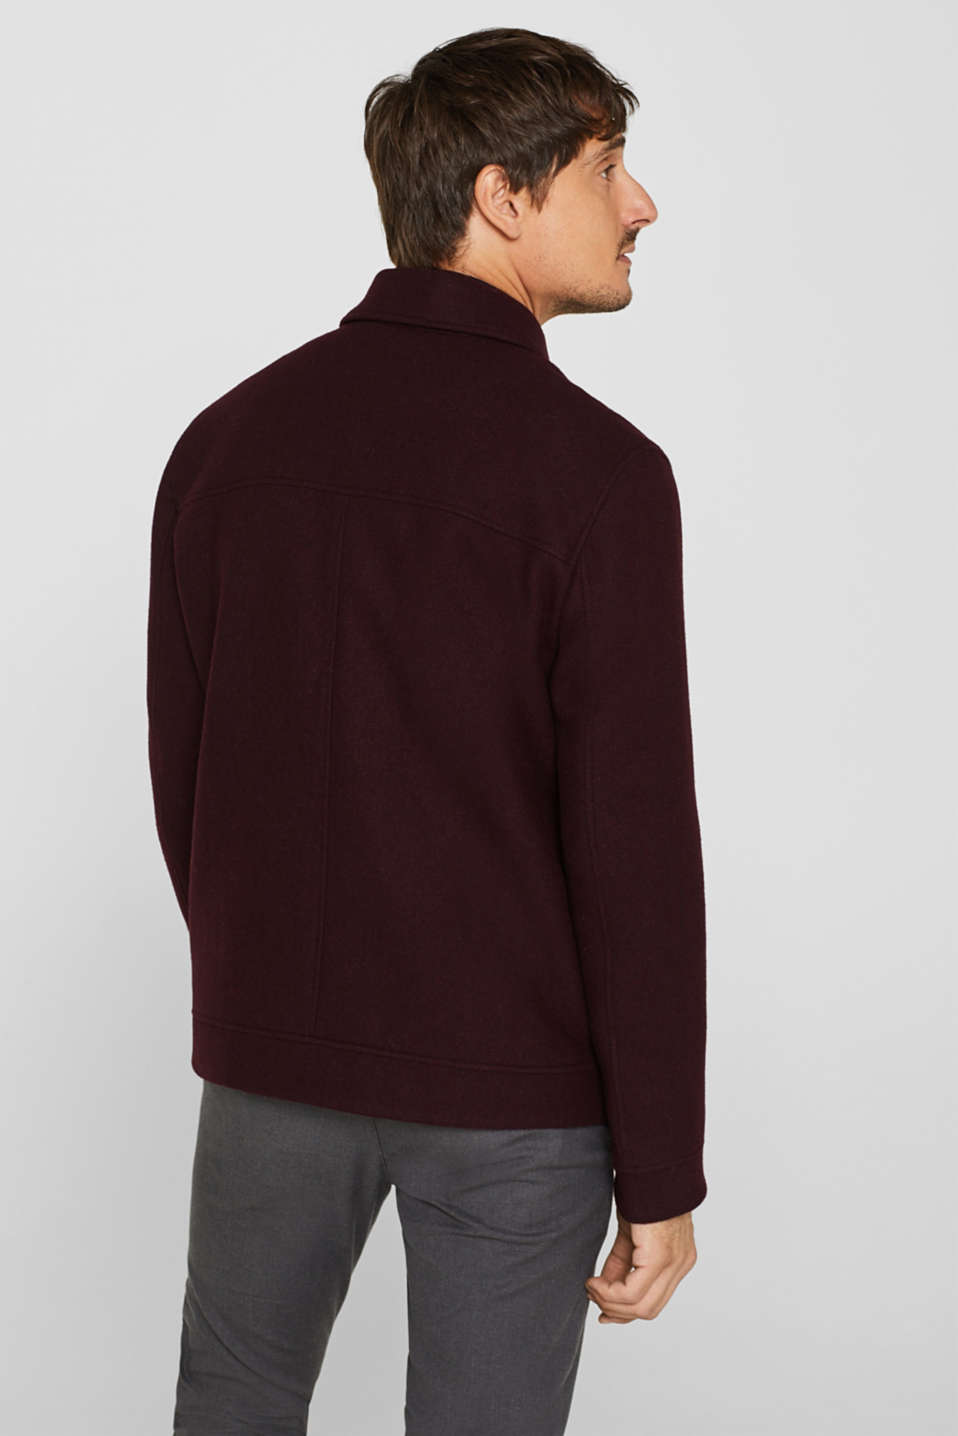 Wool blend: Bomber jacket with a shirt collar, BORDEAUX RED, detail image number 3